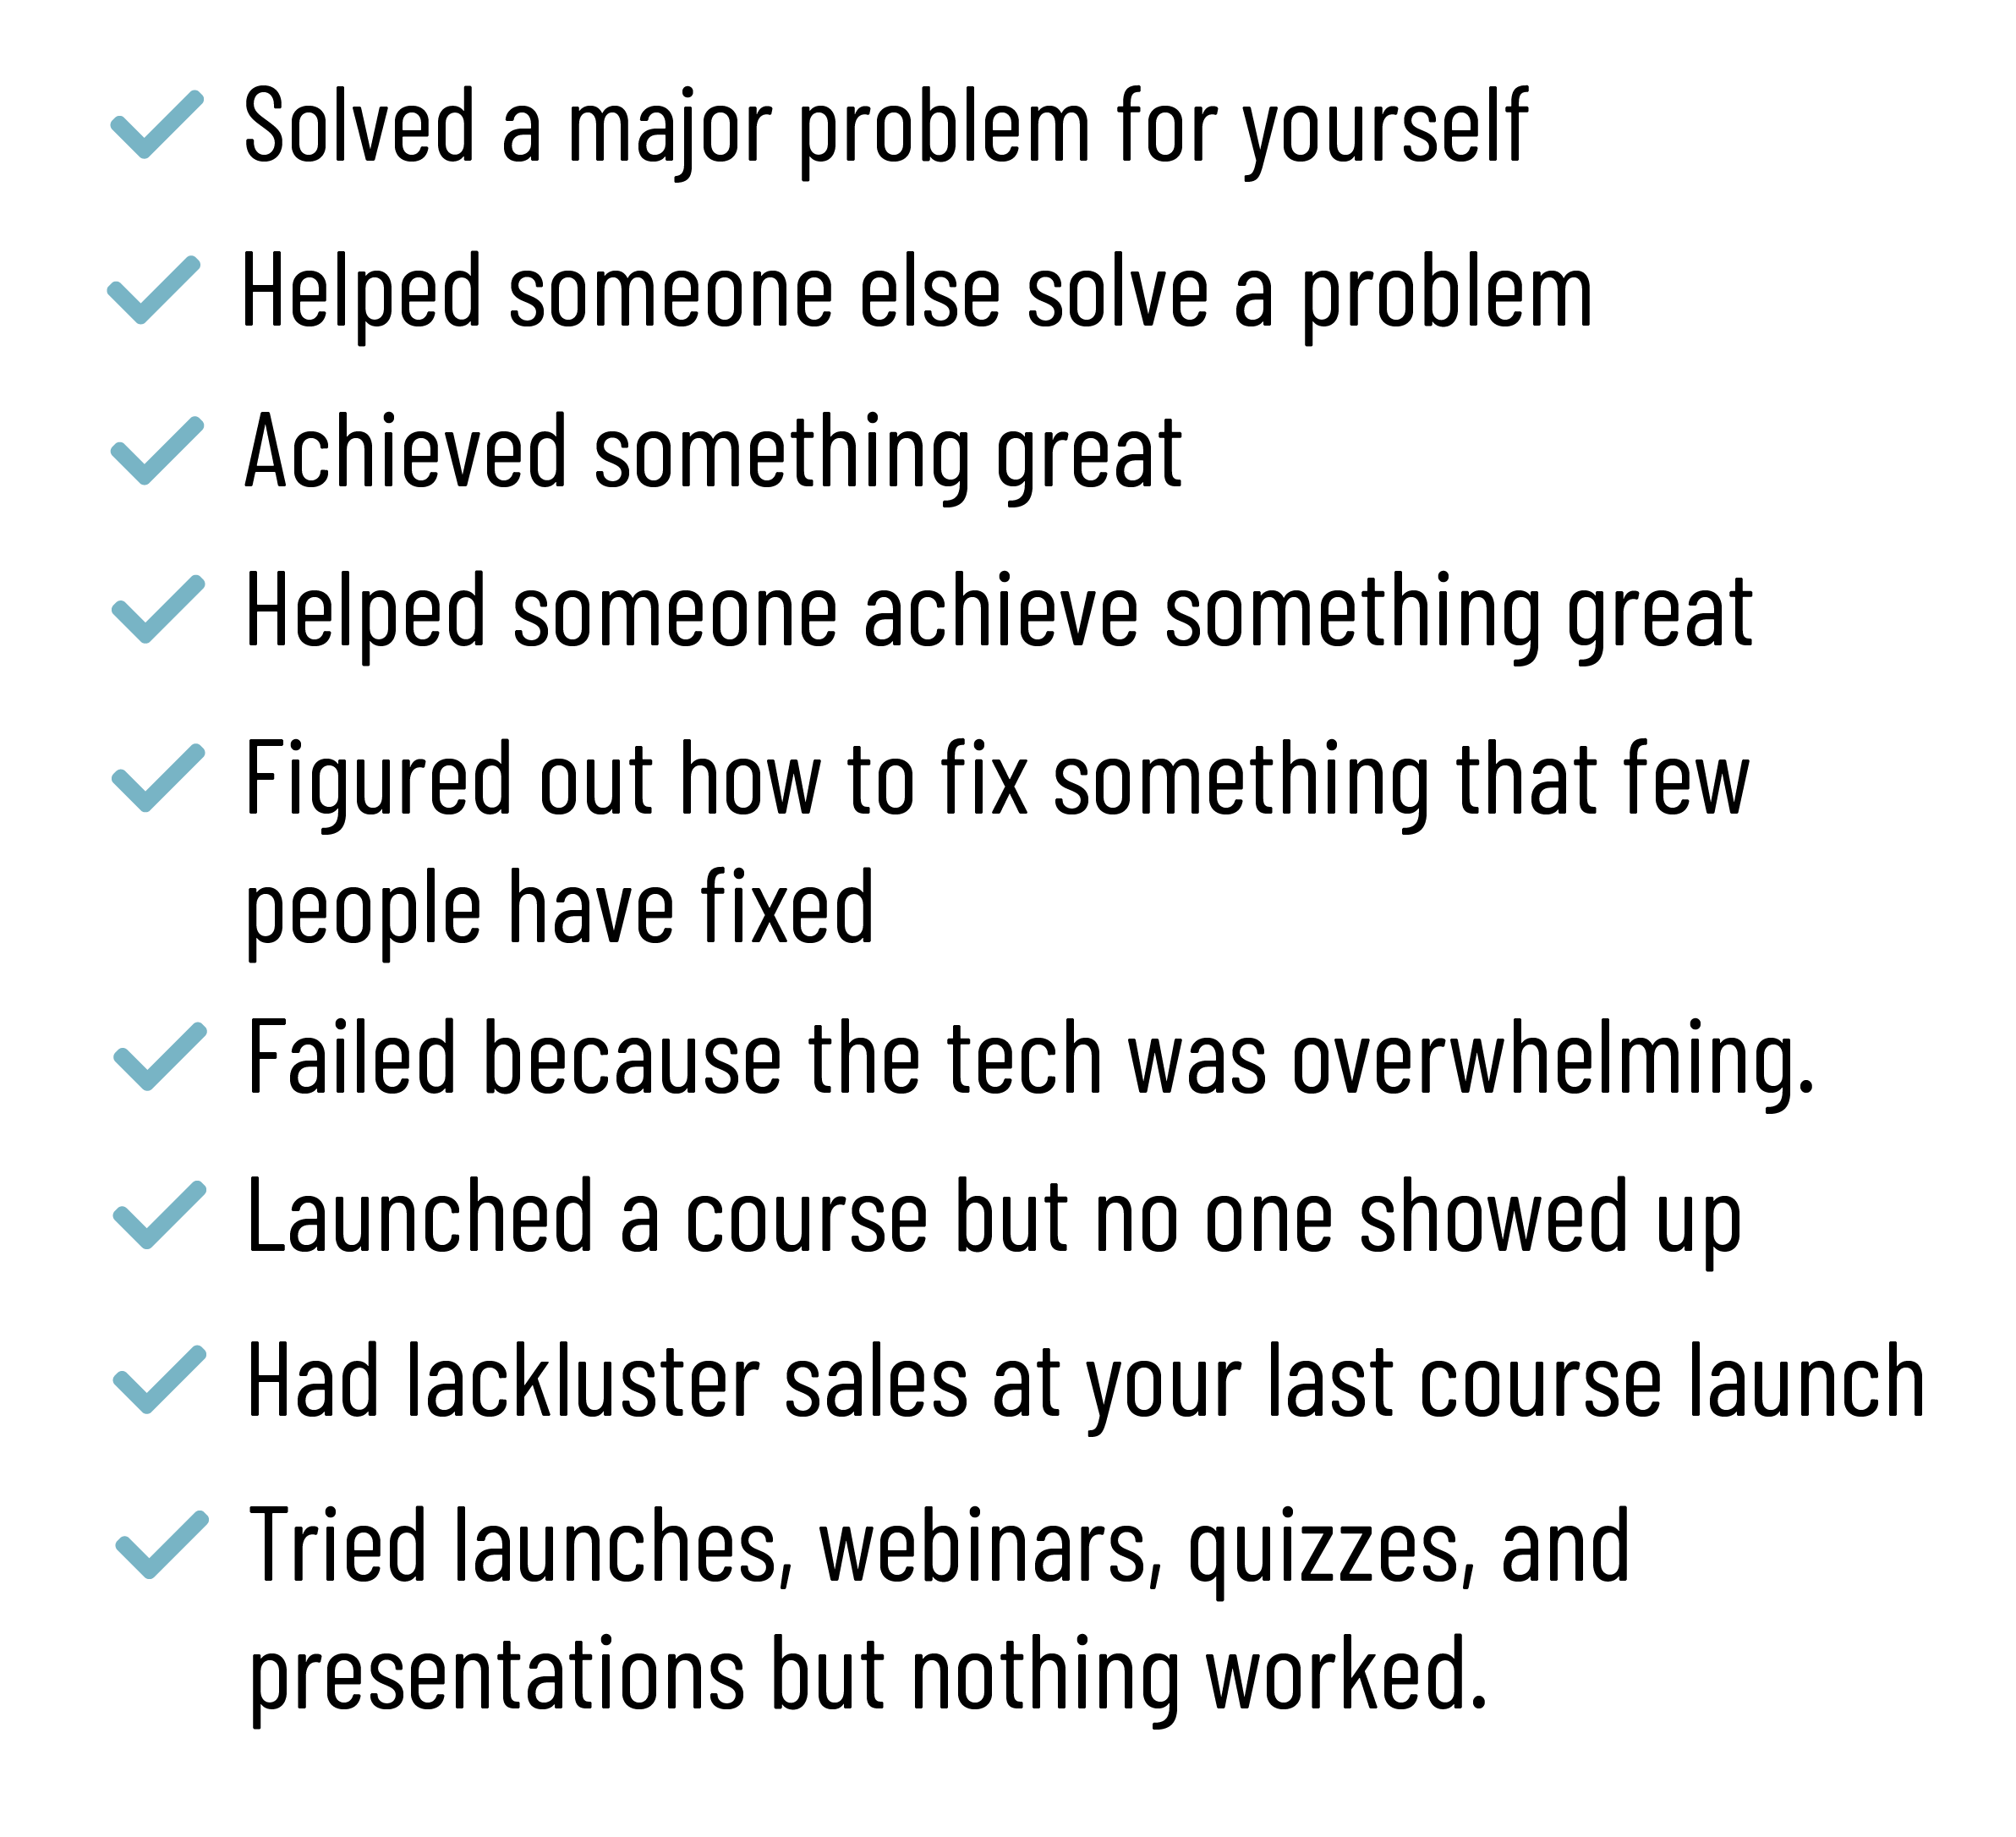 Solved a Major problem for yourself, helped someone else solve a problem, achieved something great, helped someone achieve something great, figured out how to fix something that few people have fixed, failed because the tech was overwhelming, launched a course but no one showed up, had lackluster sales at your last course launch, tried launches webinars quizzes and presentation but nothing worked.